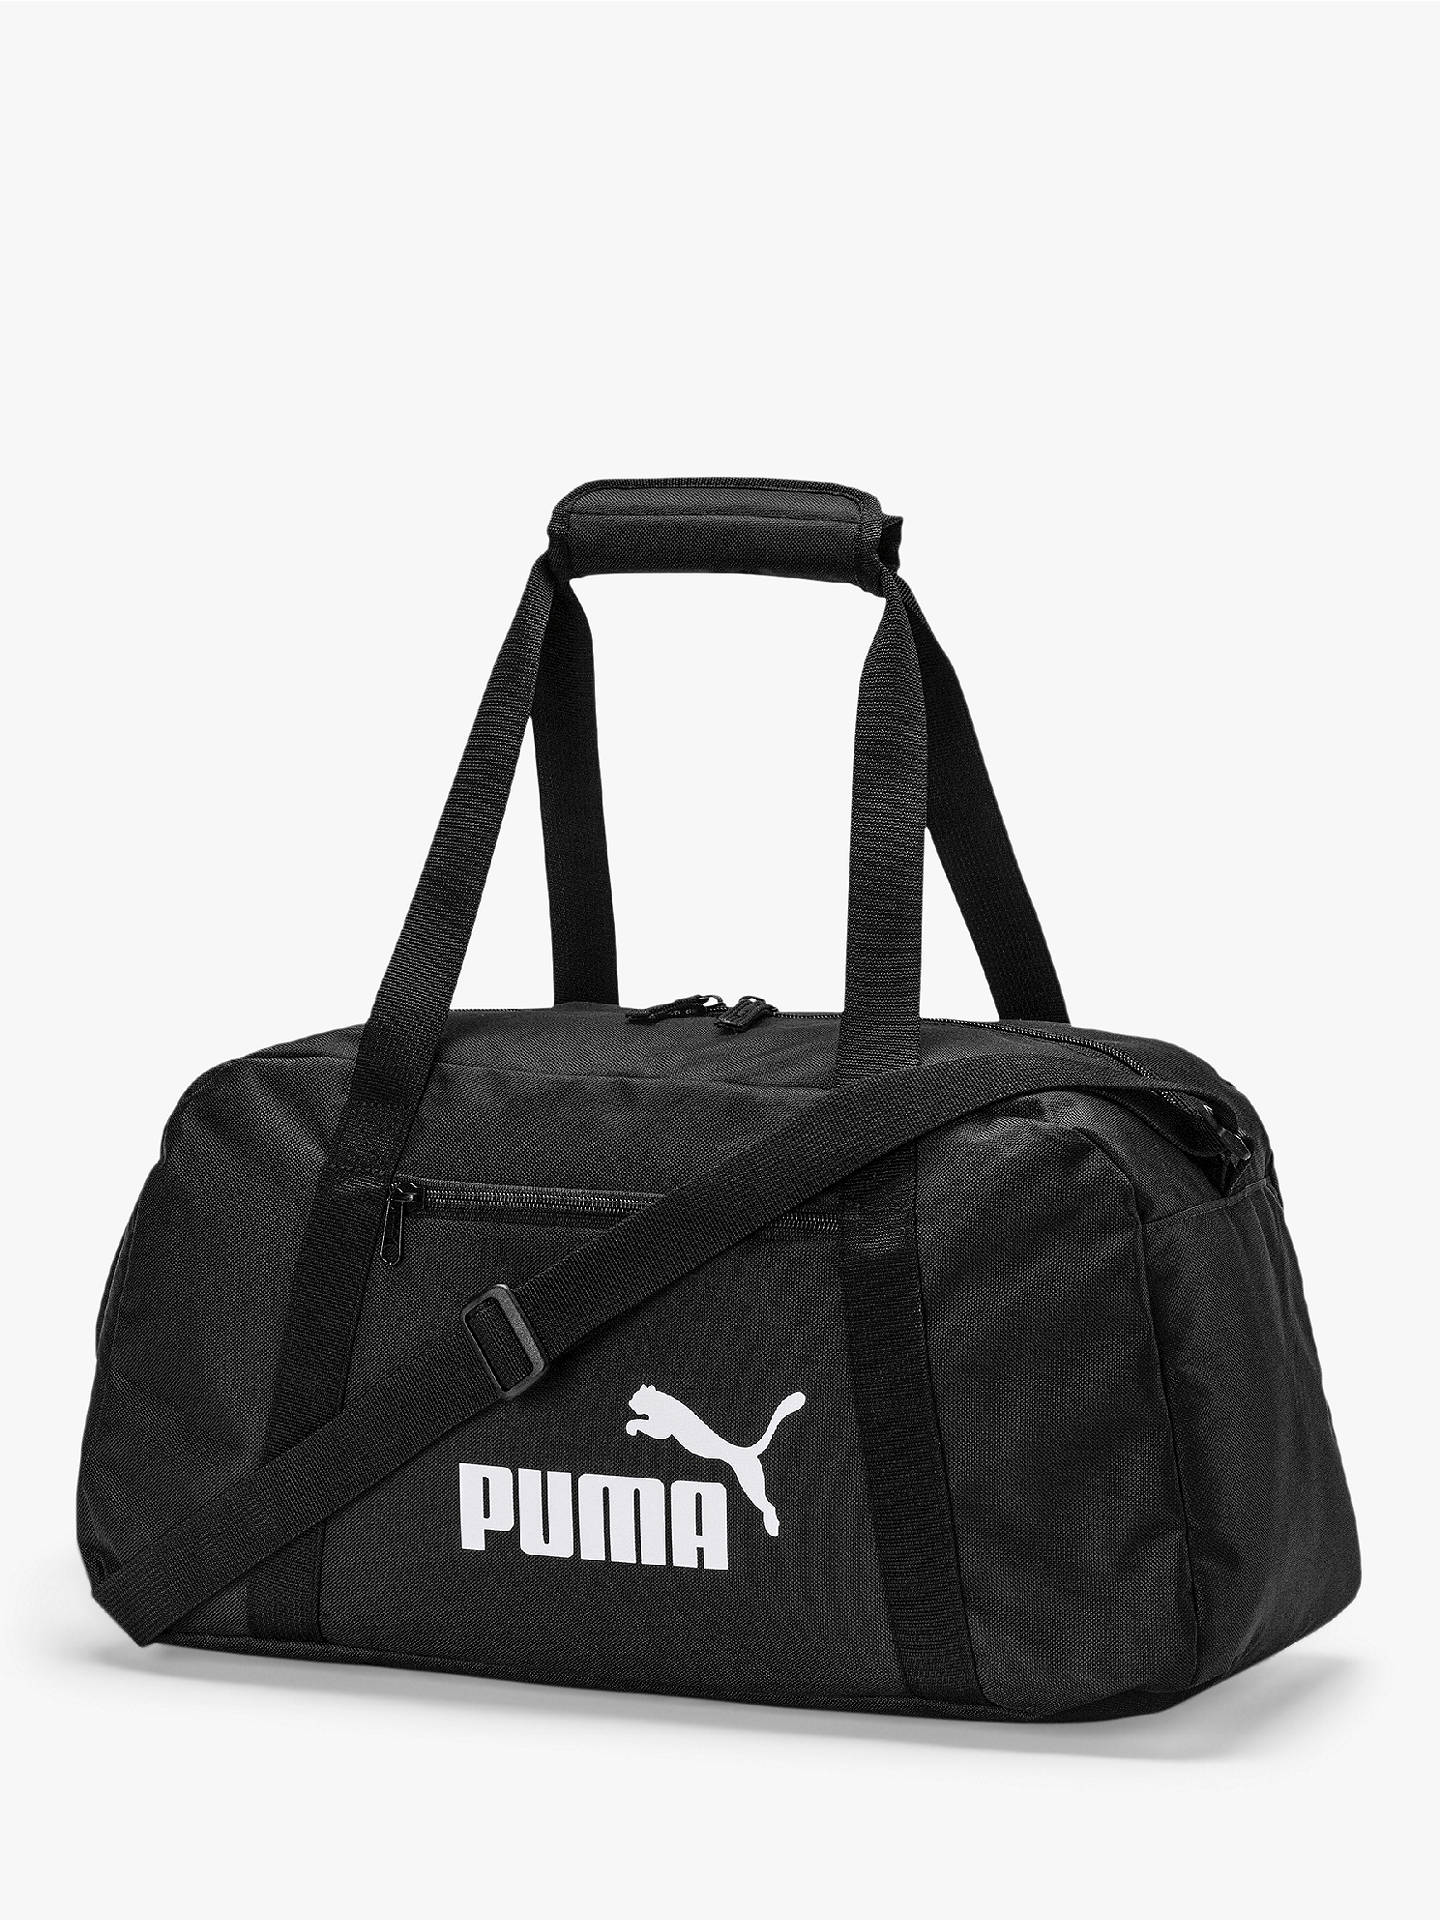 3fbc5b65fc PUMA Children s Phase Sport Bag at John Lewis   Partners